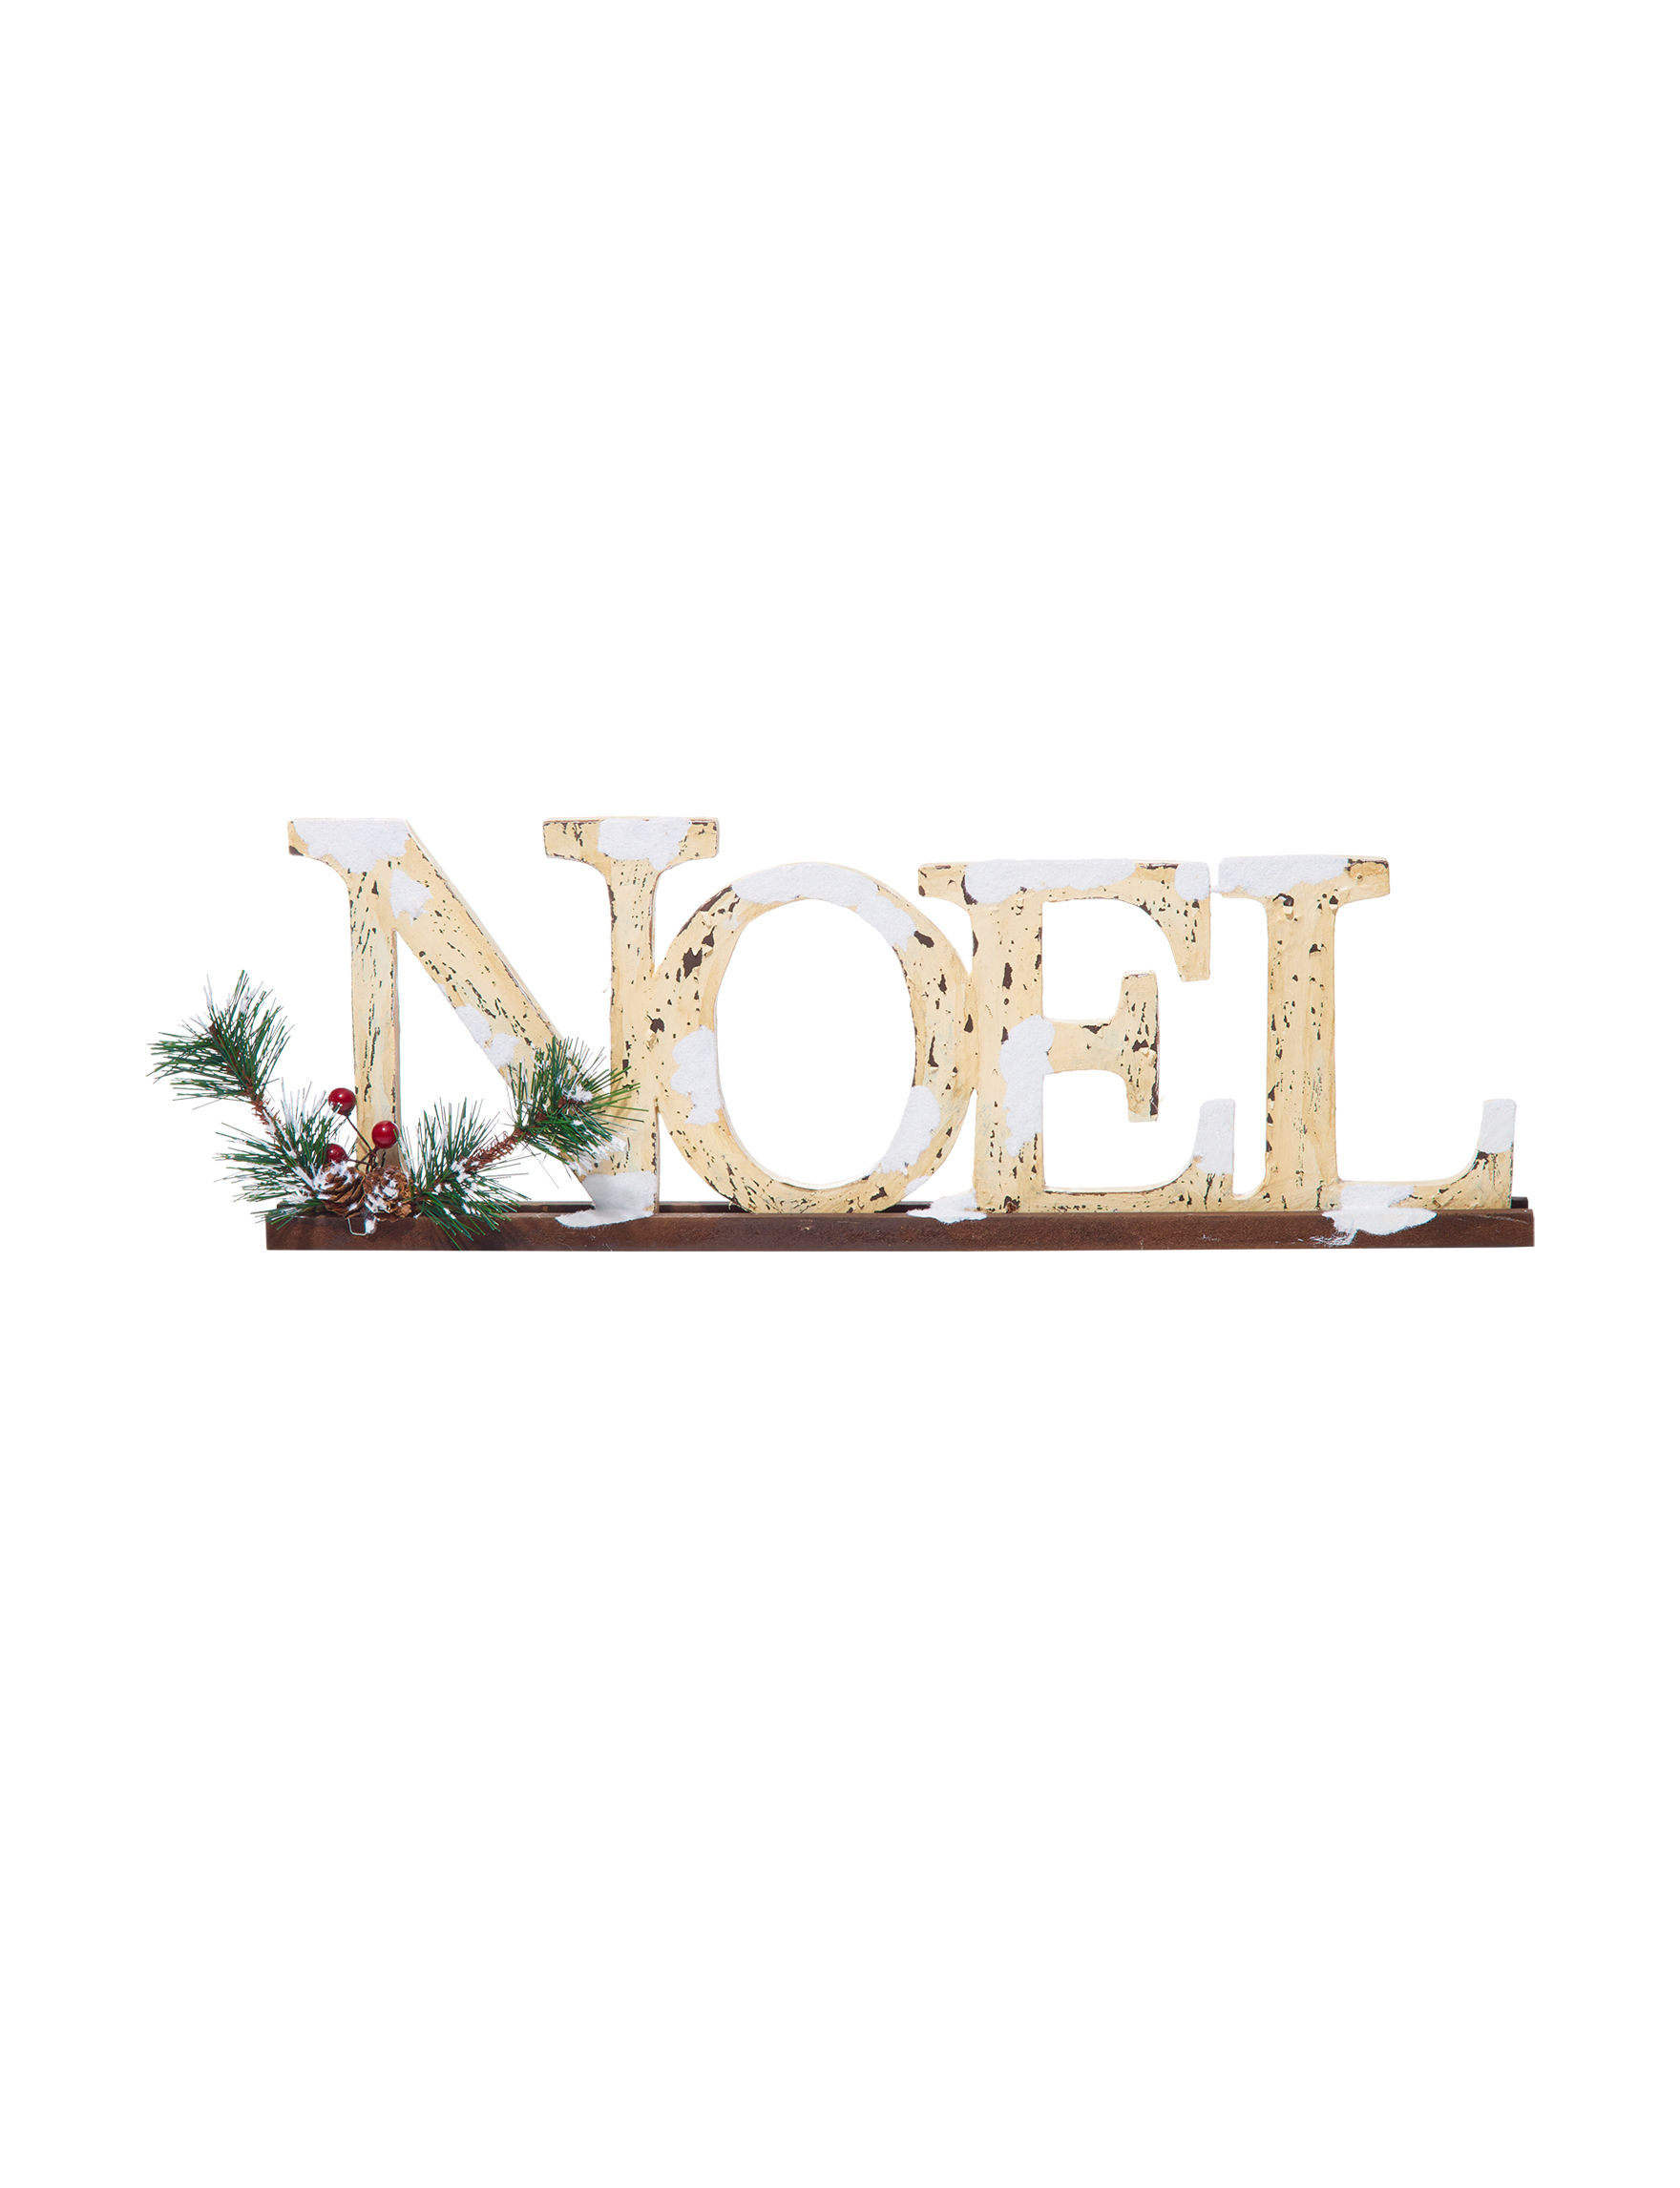 Jingle Bell Lane Off White Decorative Objects Holiday Decor